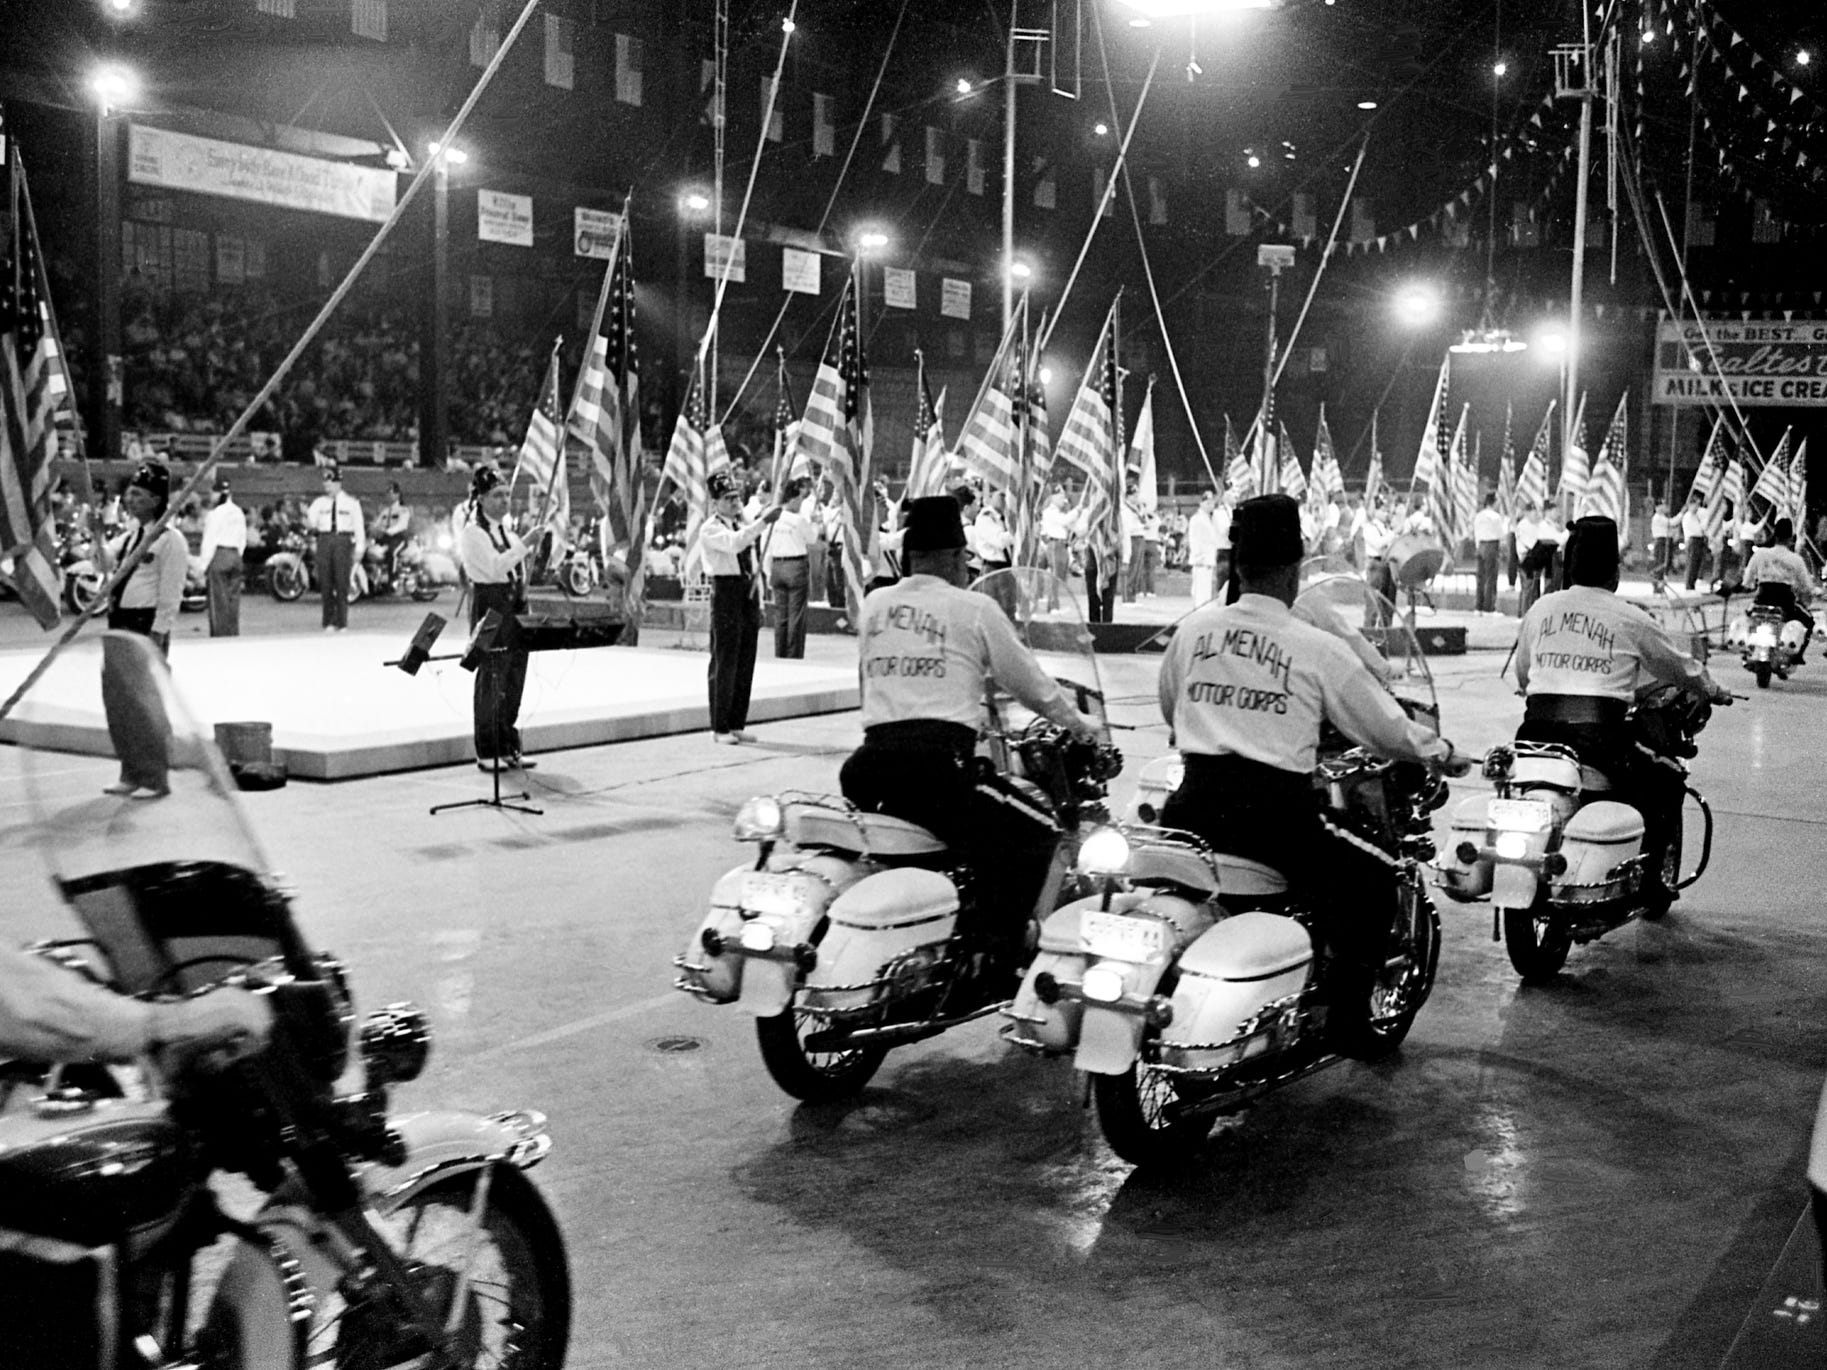 The 25th annual Al Menah Temple Shrine Circus opens at the Fairgrounds Coliseum on April 23, 1968, with the roar of the famed Al Menah Temple's nationally acclaimed motorcycle units.